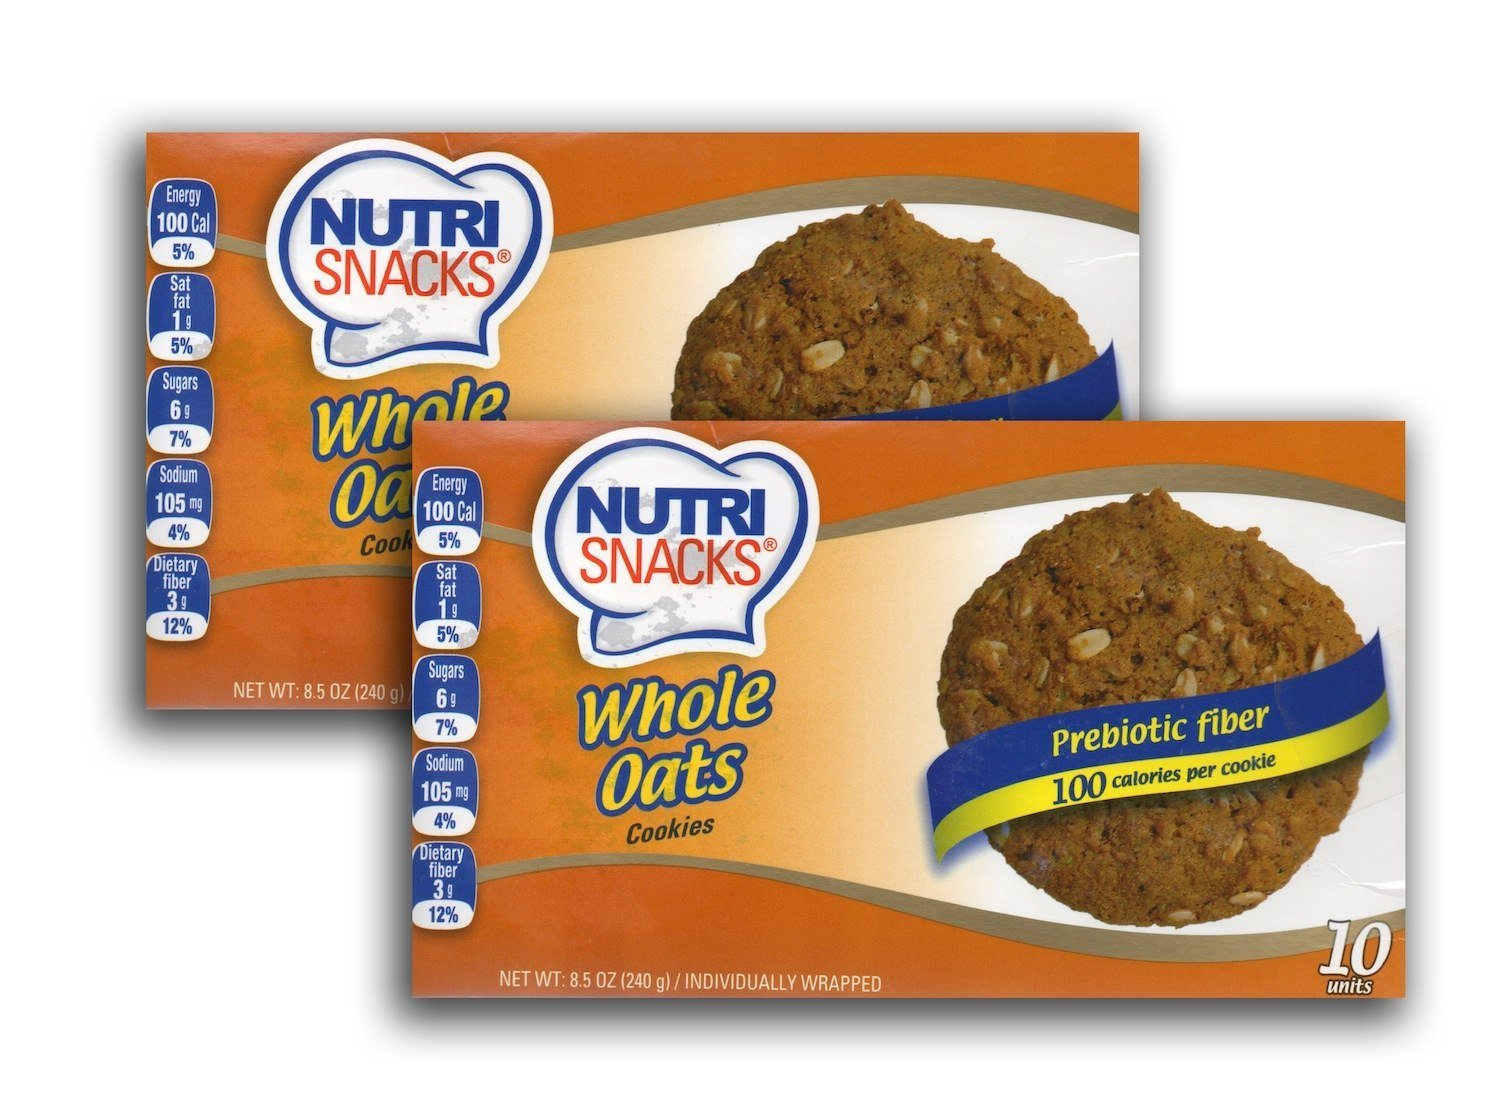 Amazon.com : Nutri Snacks Whole Oats Cookies - 2 Pack : Grocery & Gourmet Food